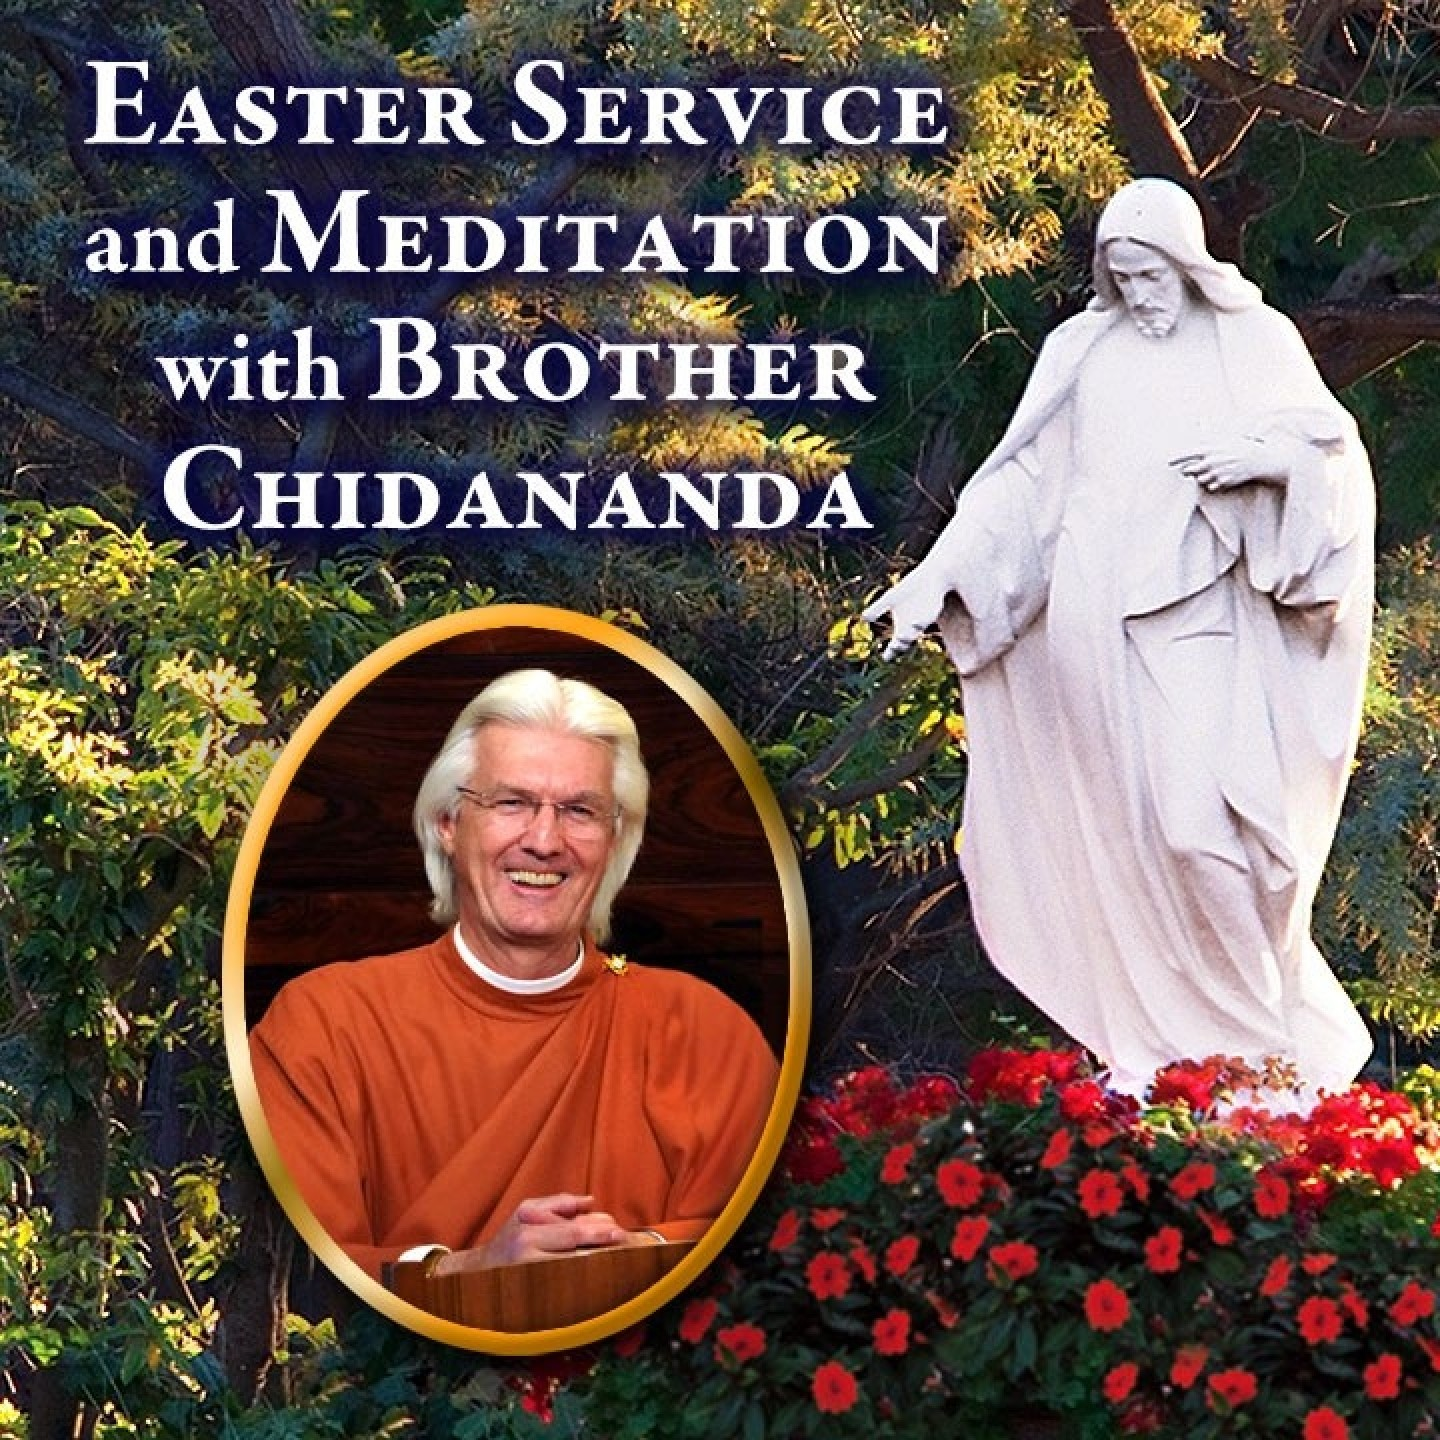 2020 Easter Service and Meditation with Brother Chidananda